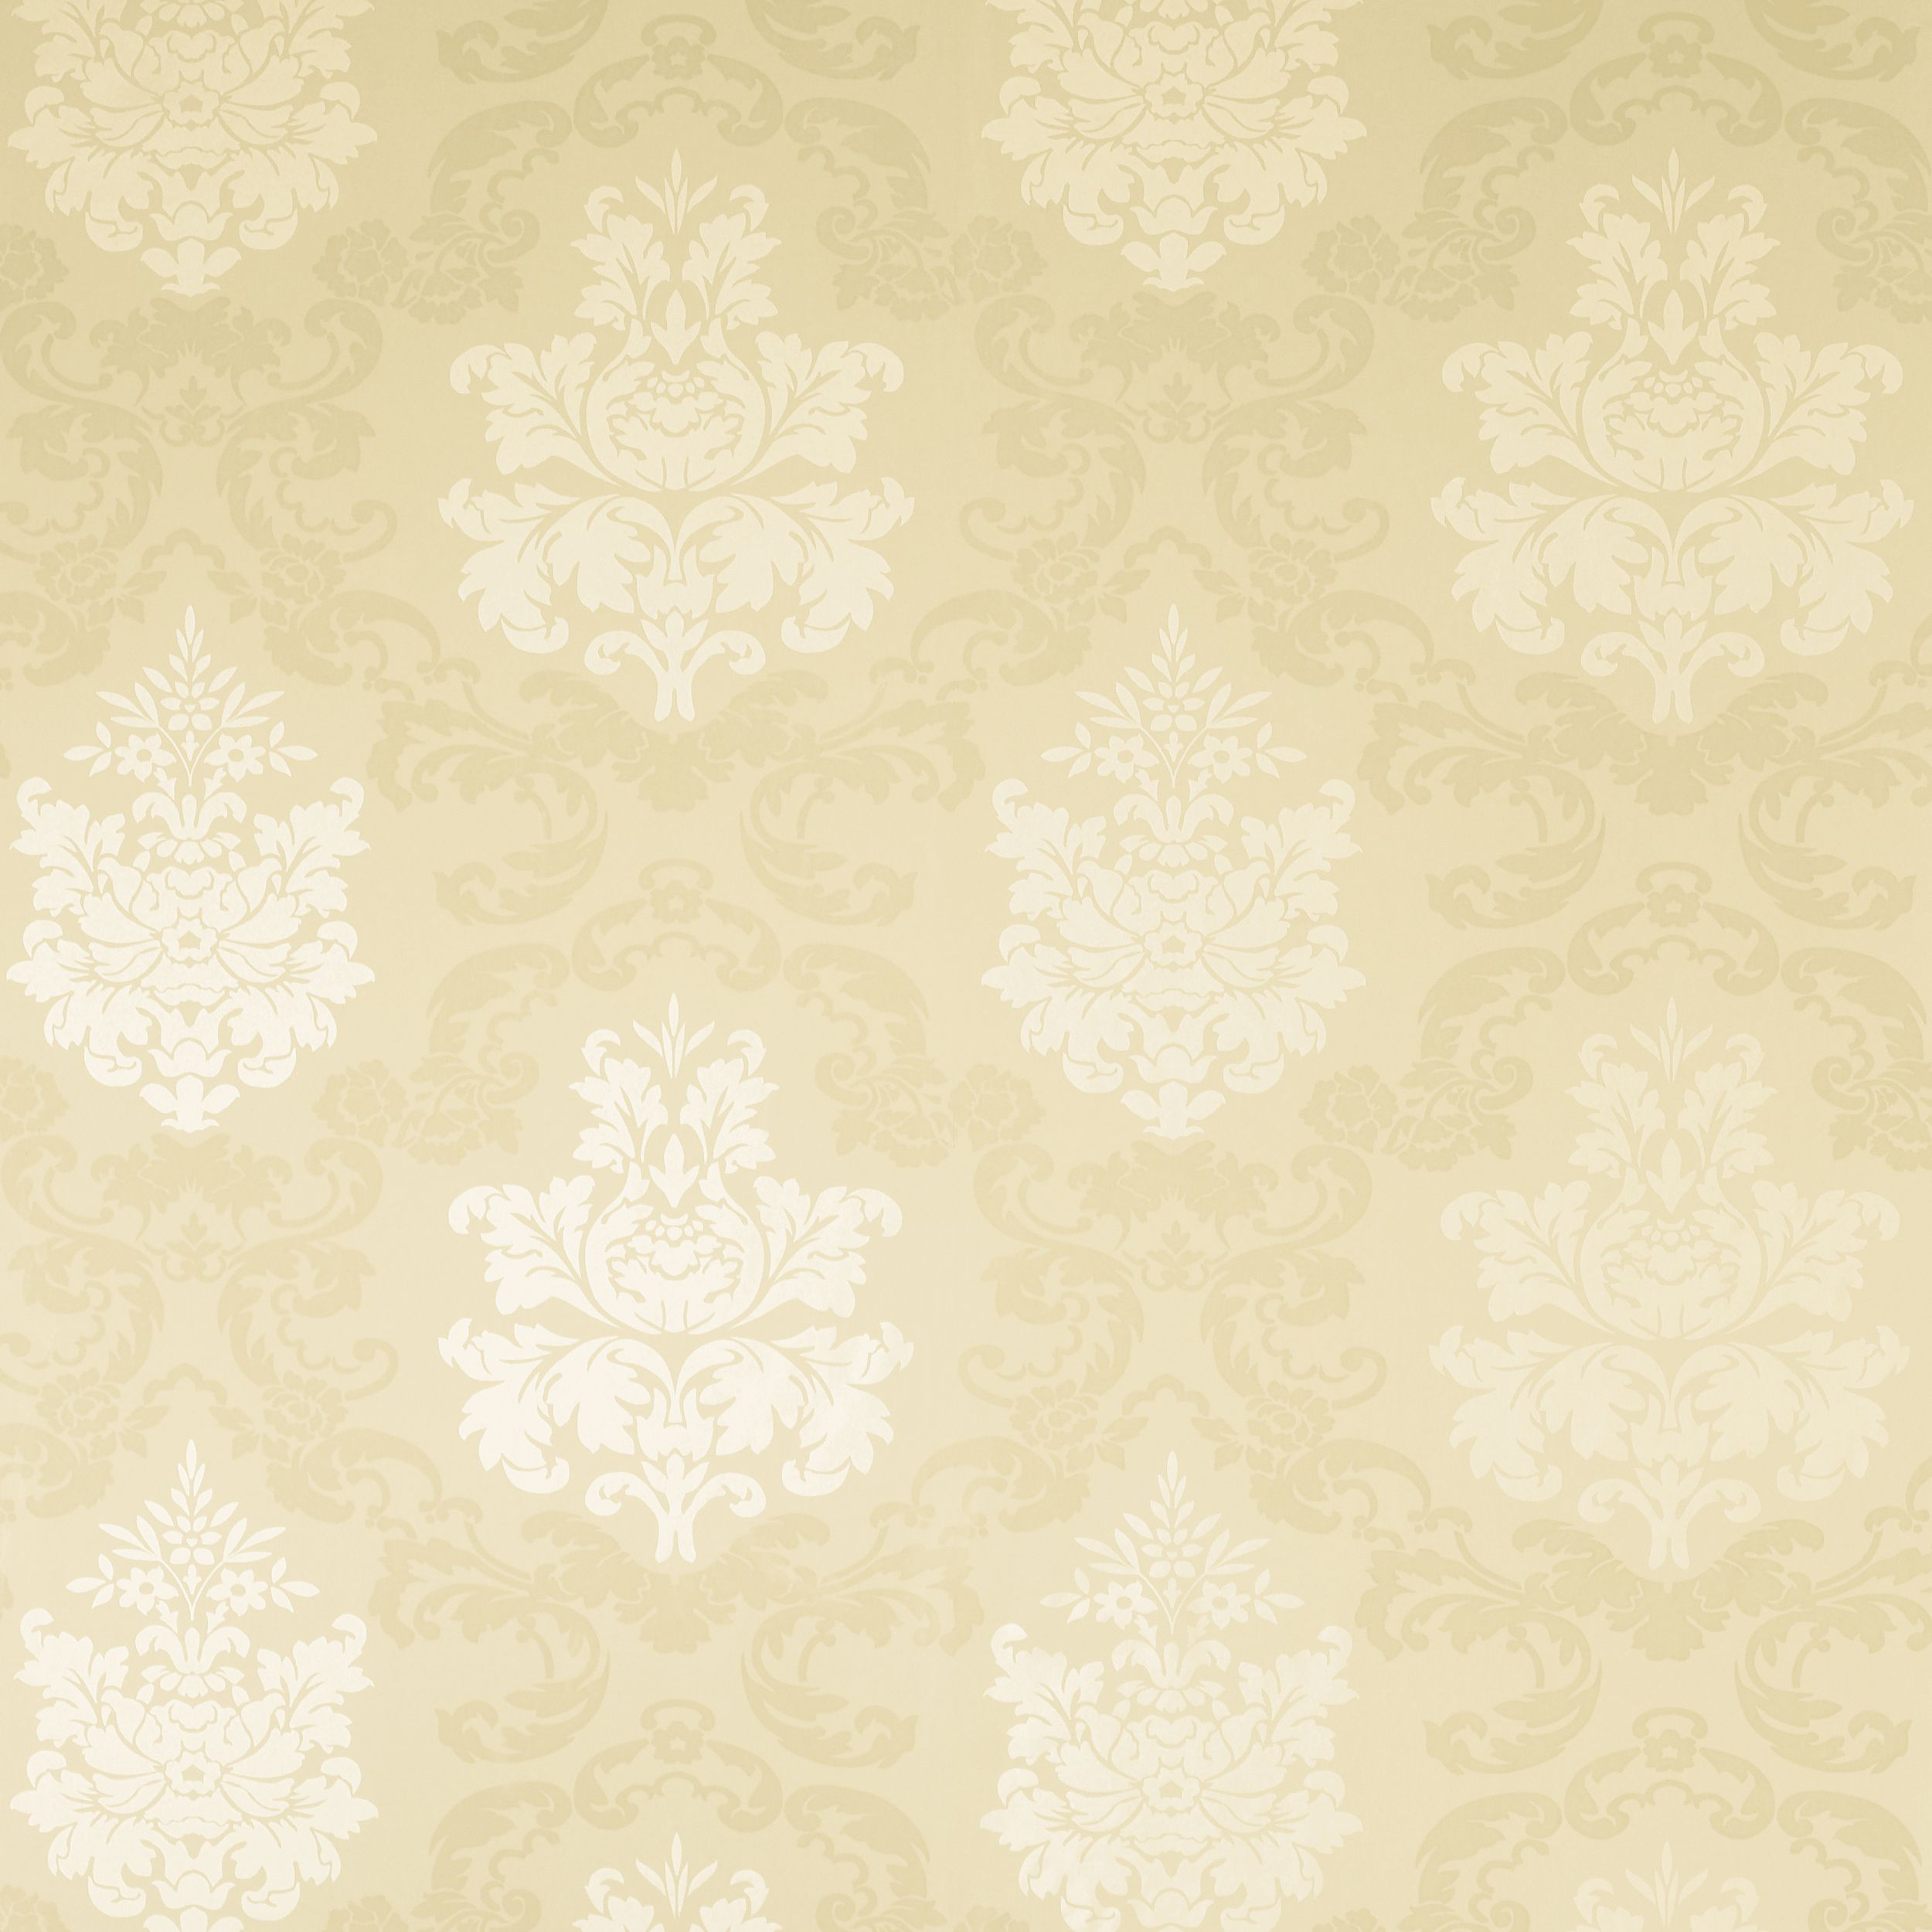 Living room wallpaper texture - Laura Ashley Delancy Damask Wallpaper In Gold Was 37 Now 15 Gold Damask Wallpaperliving Room